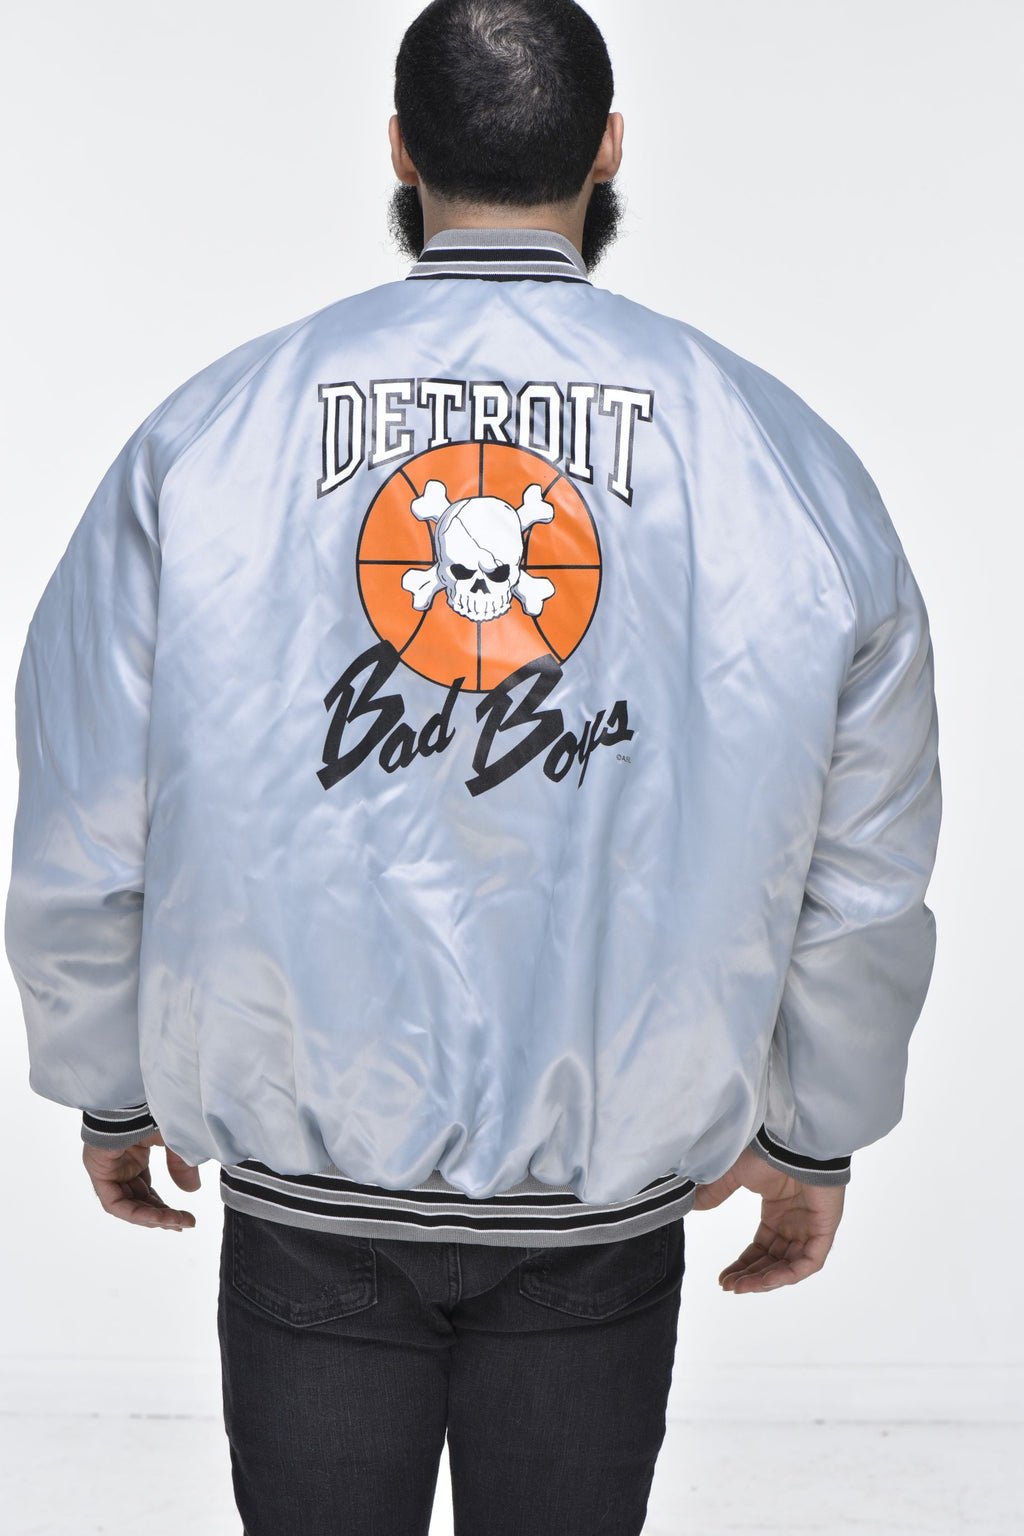 Men's Detroit Bad Boys Jacket – Grey